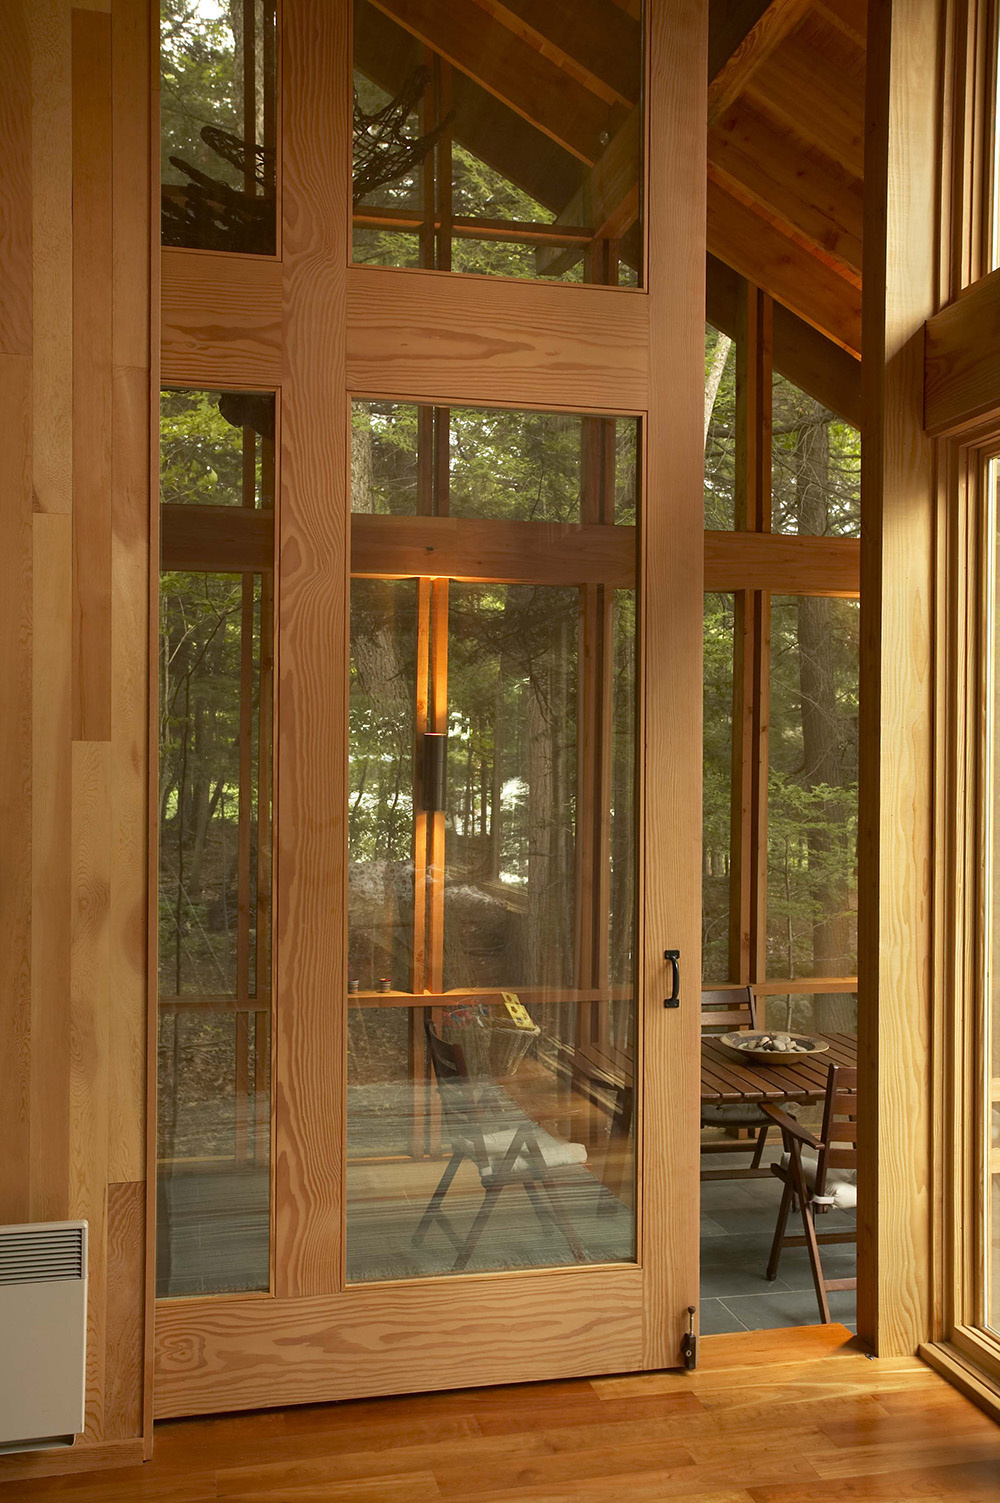 Large Douglas Fir and glass sliding pocket door to screen porch, closed